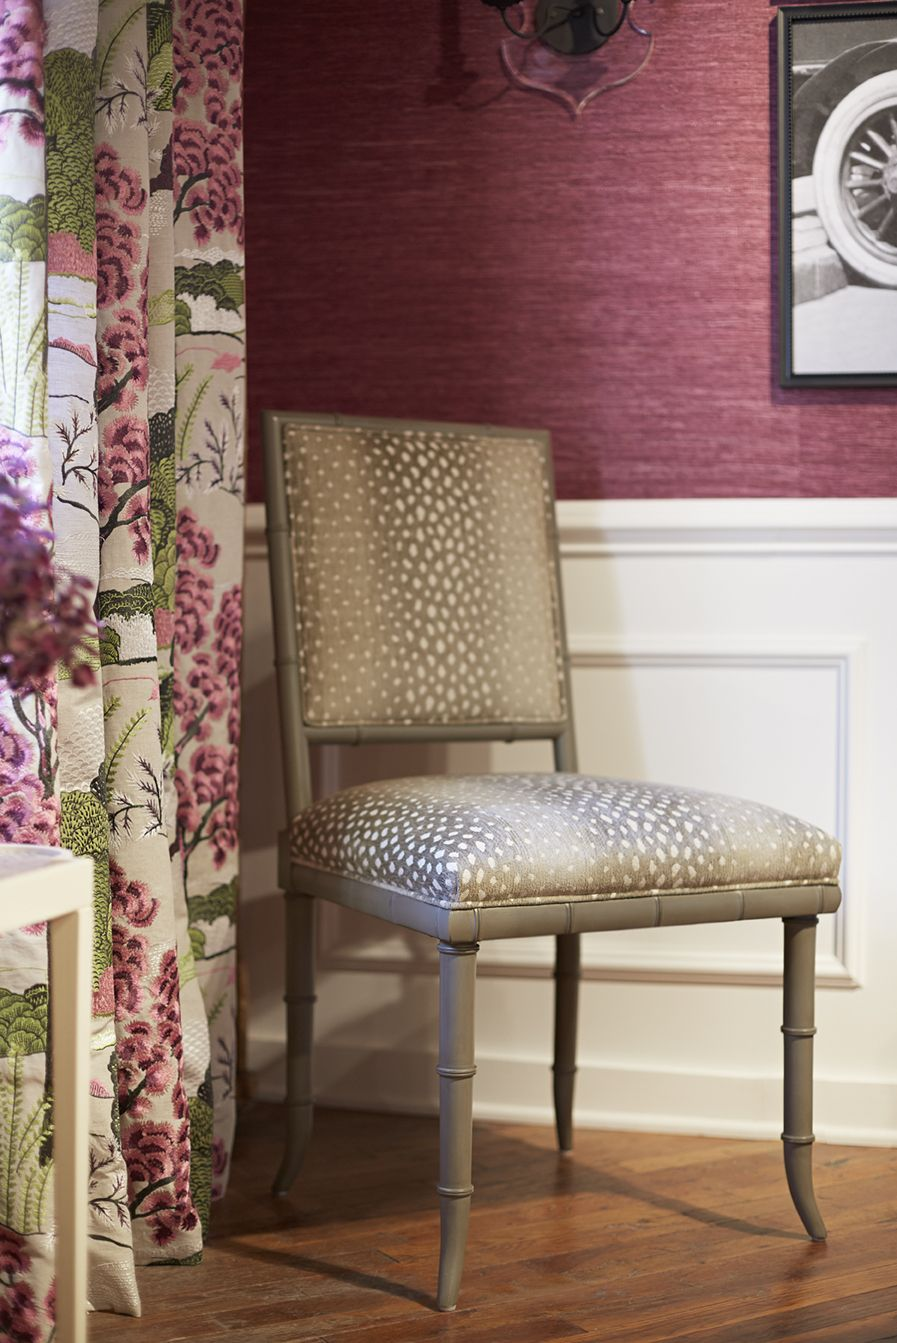 Thibaut High Point Showroom Fall 2016 Visit Us at www